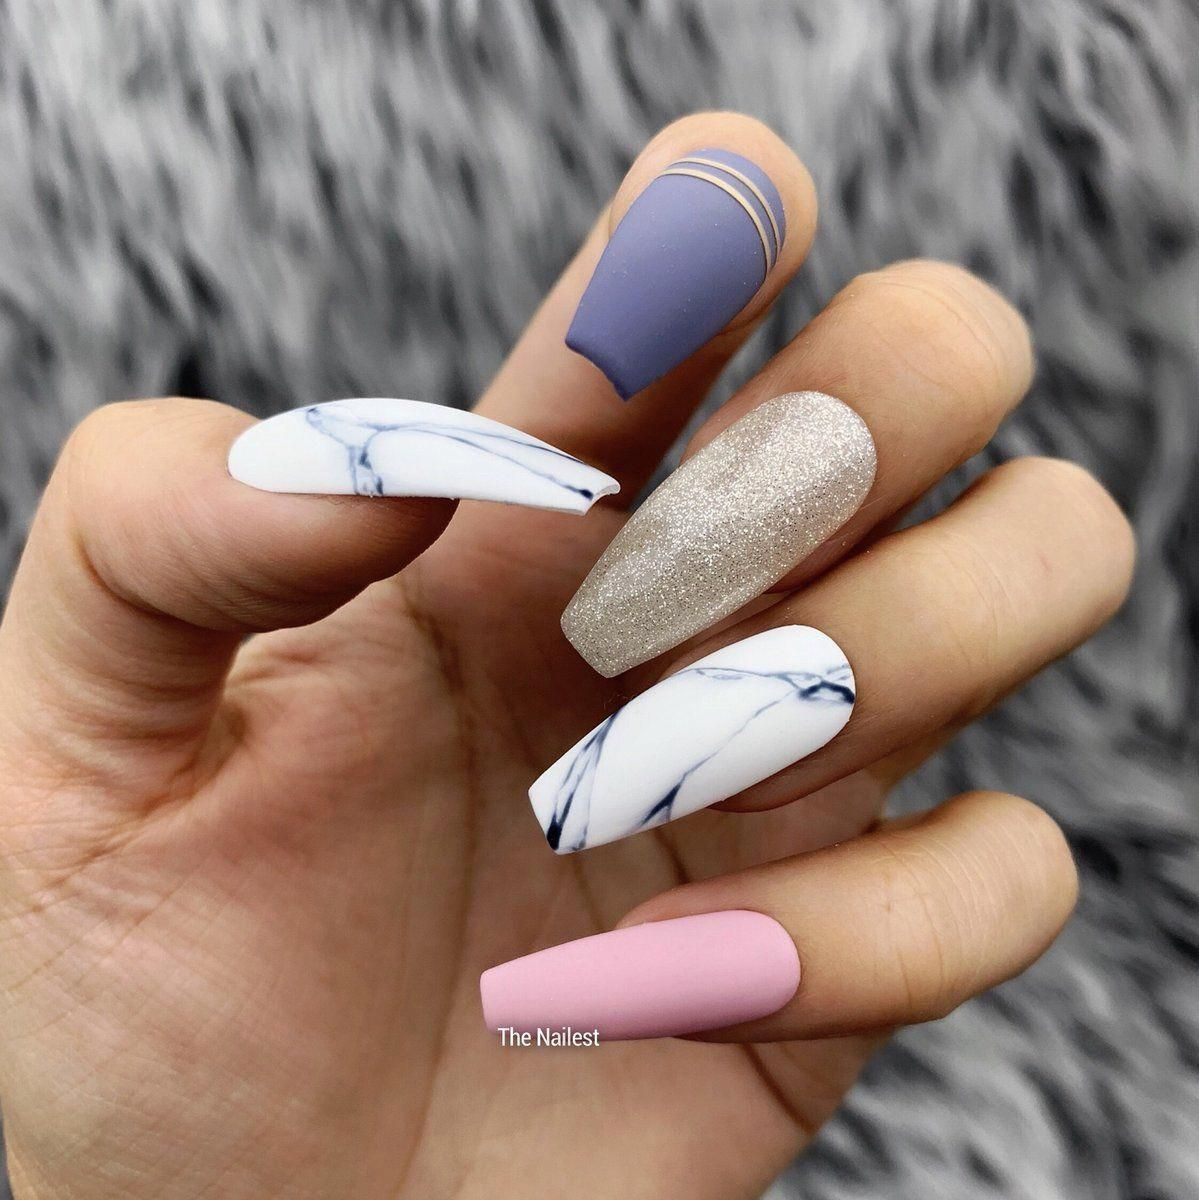 White Marble Mixed W Blue Pink Solid Colored Press On Nails Any Shape Fake Nails False Nails G Glue On Nails Coffin Nails Designs Acrylic Nails Coffin